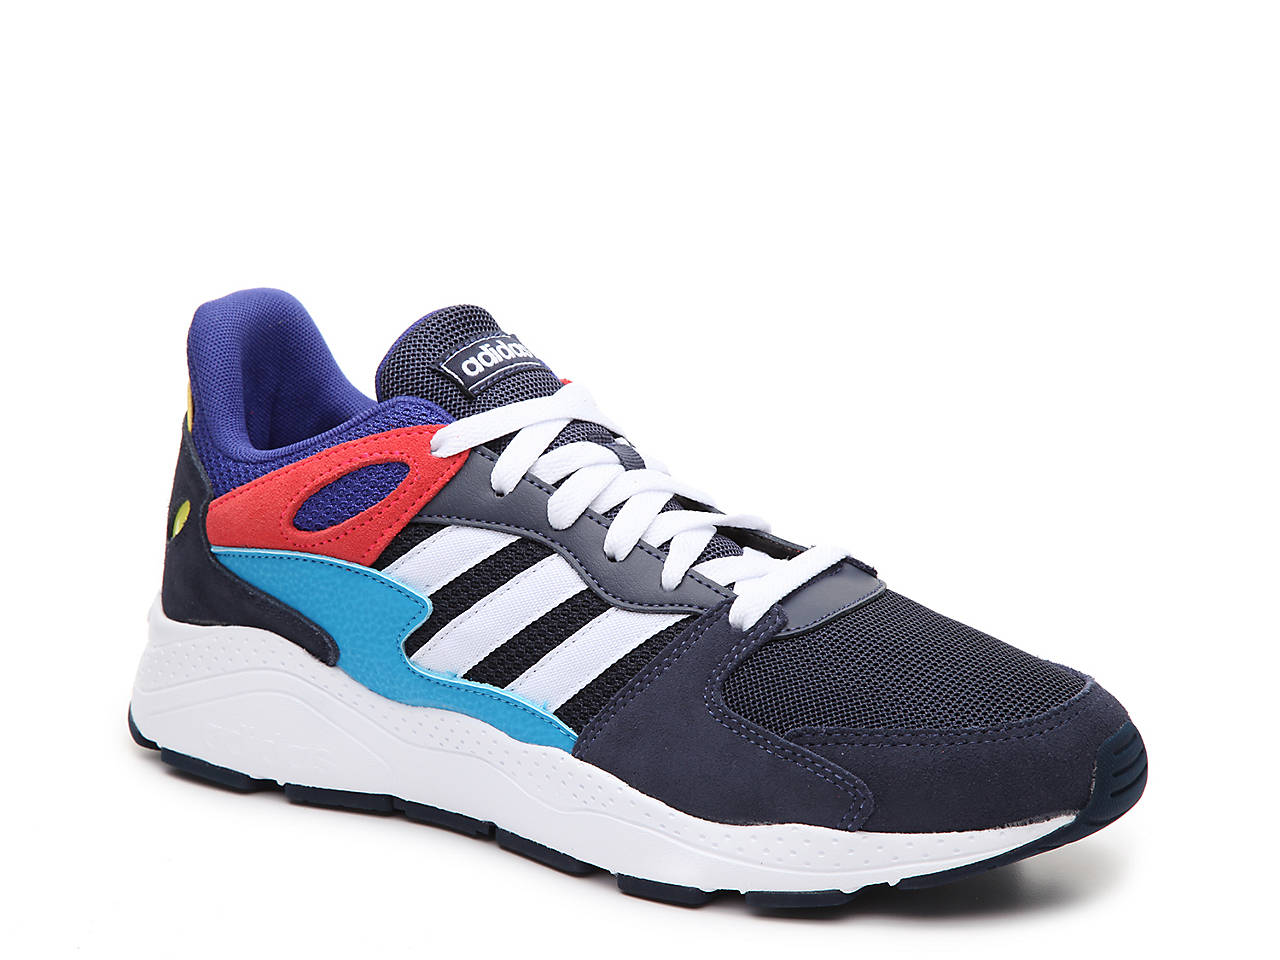 adidas Chaos Sneaker Men's Men's Shoes | DSW